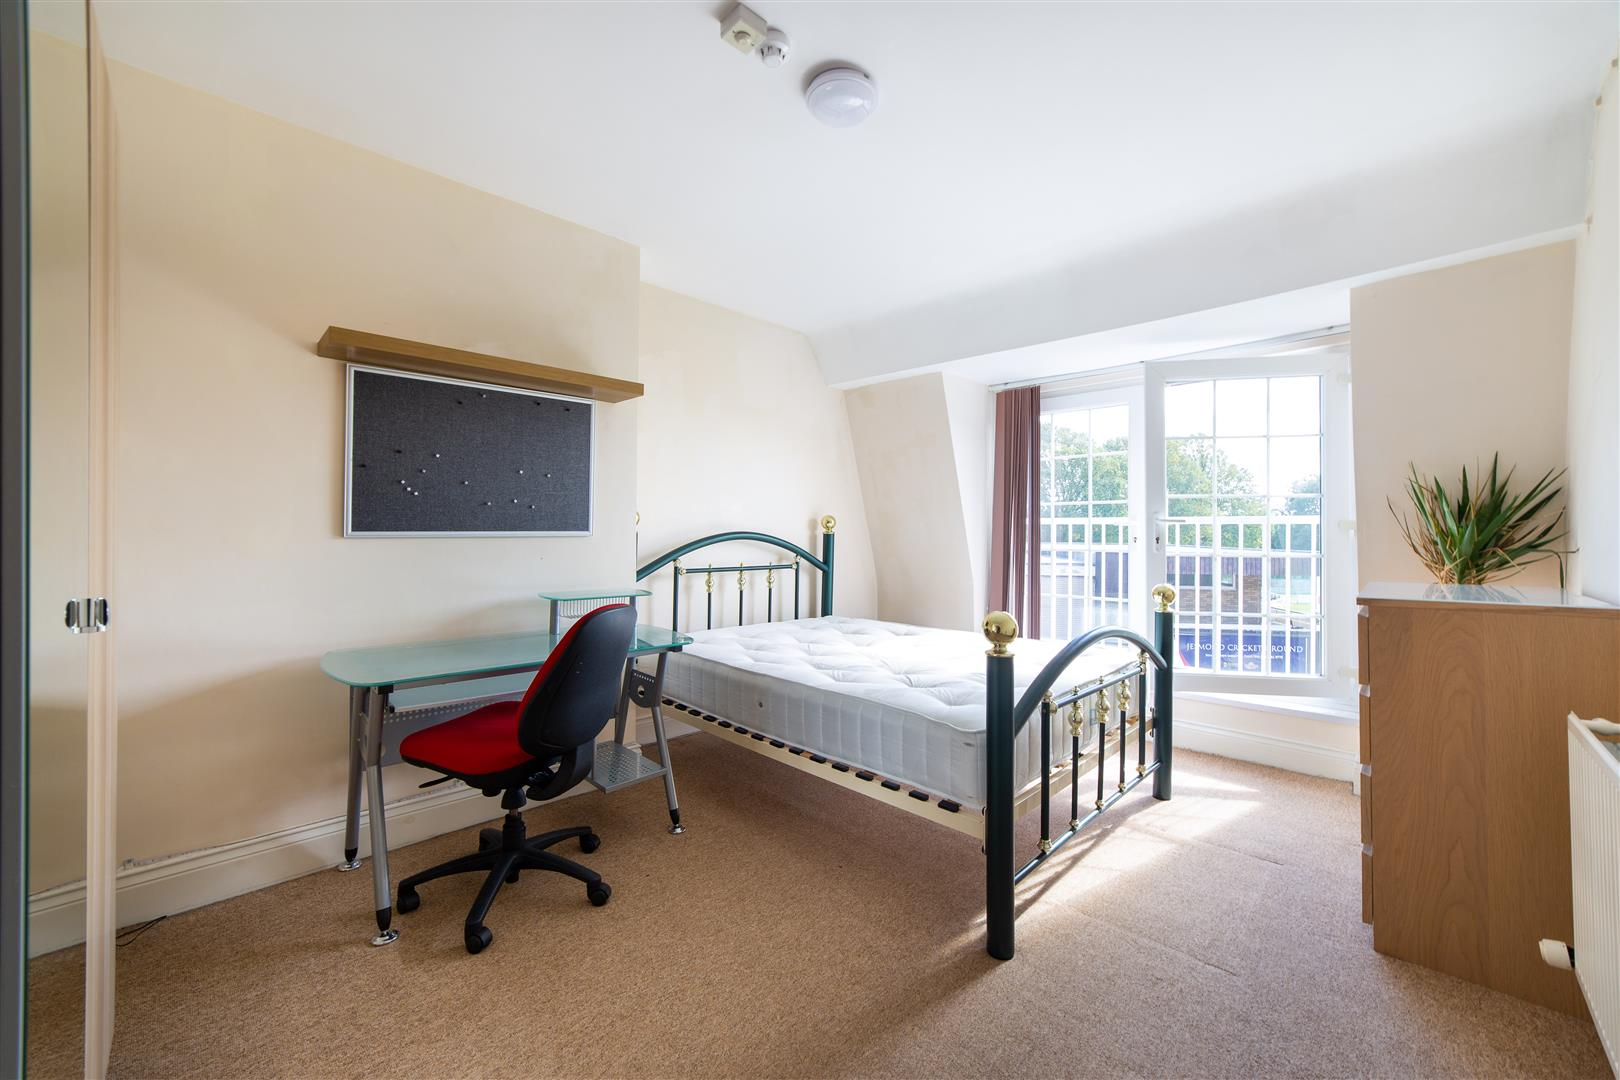 8 bed terraced house to rent in Newcastle Upon Tyne, NE2 1JS  - Property Image 14